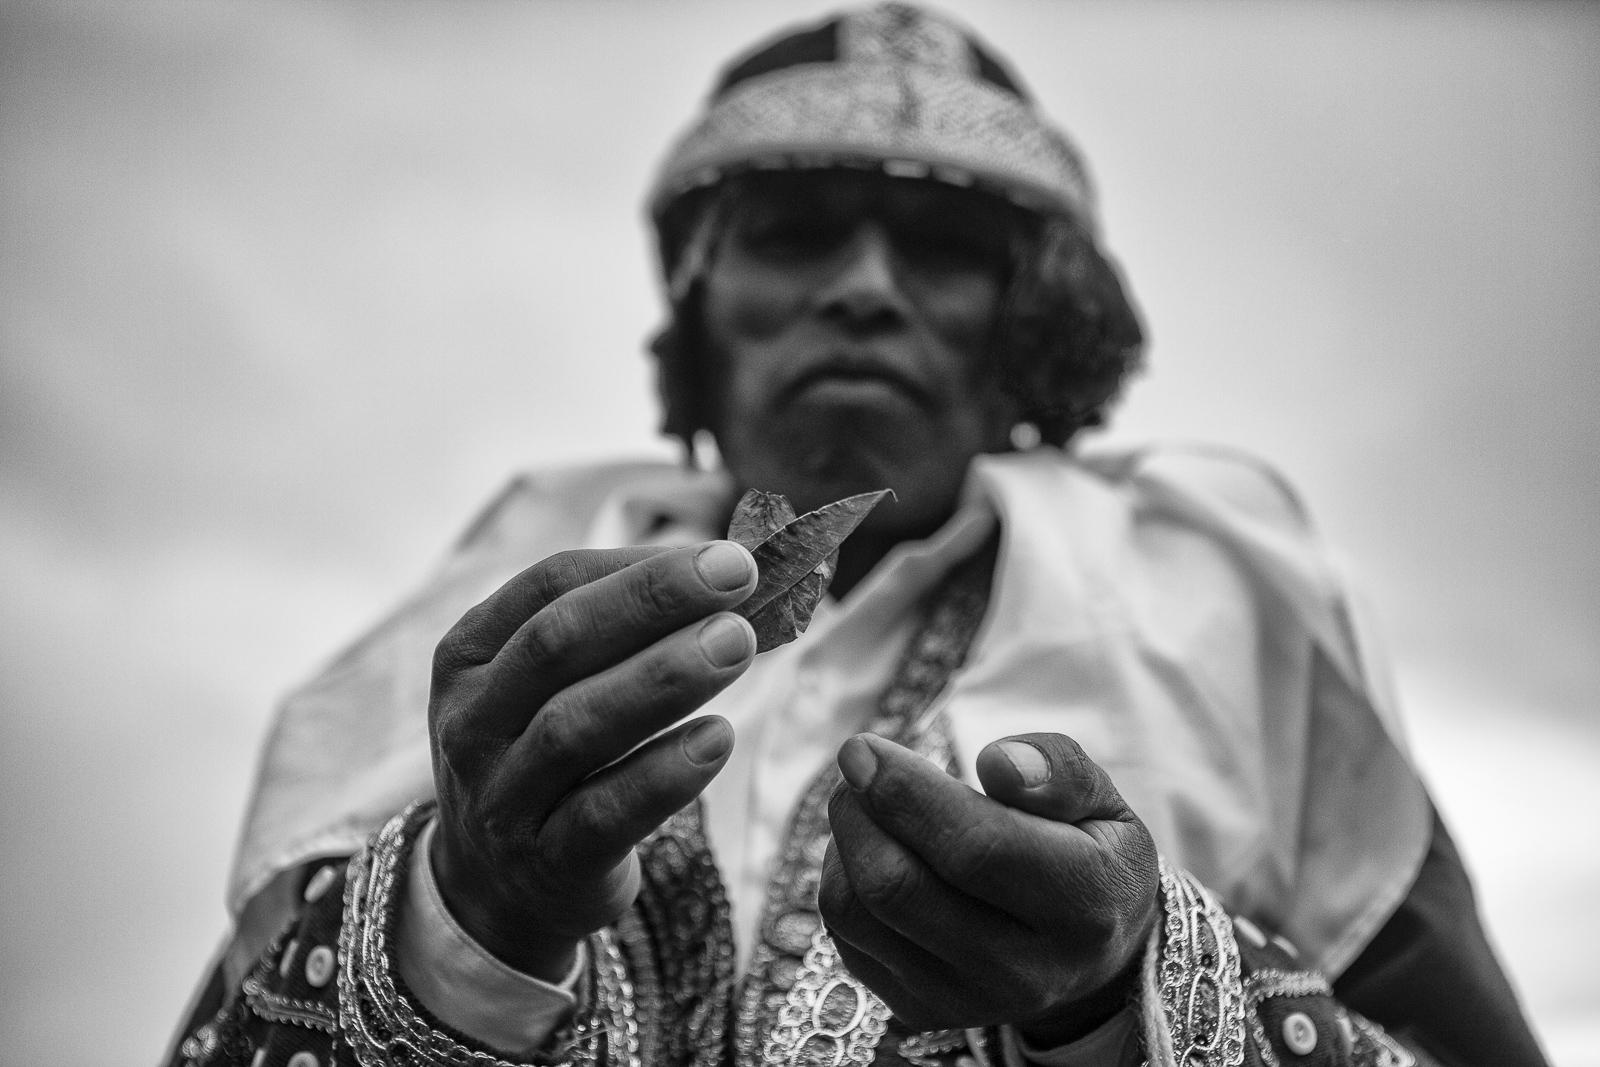 A man from the Checca community holds coca leaves. All over The Andes, coca leaves are considered sacred: they represent vital strength and spiritual food that enables communication with the gods. When chewed, coca leaves stimulate the body, help fight hunger, thrist, pain and fatigue.